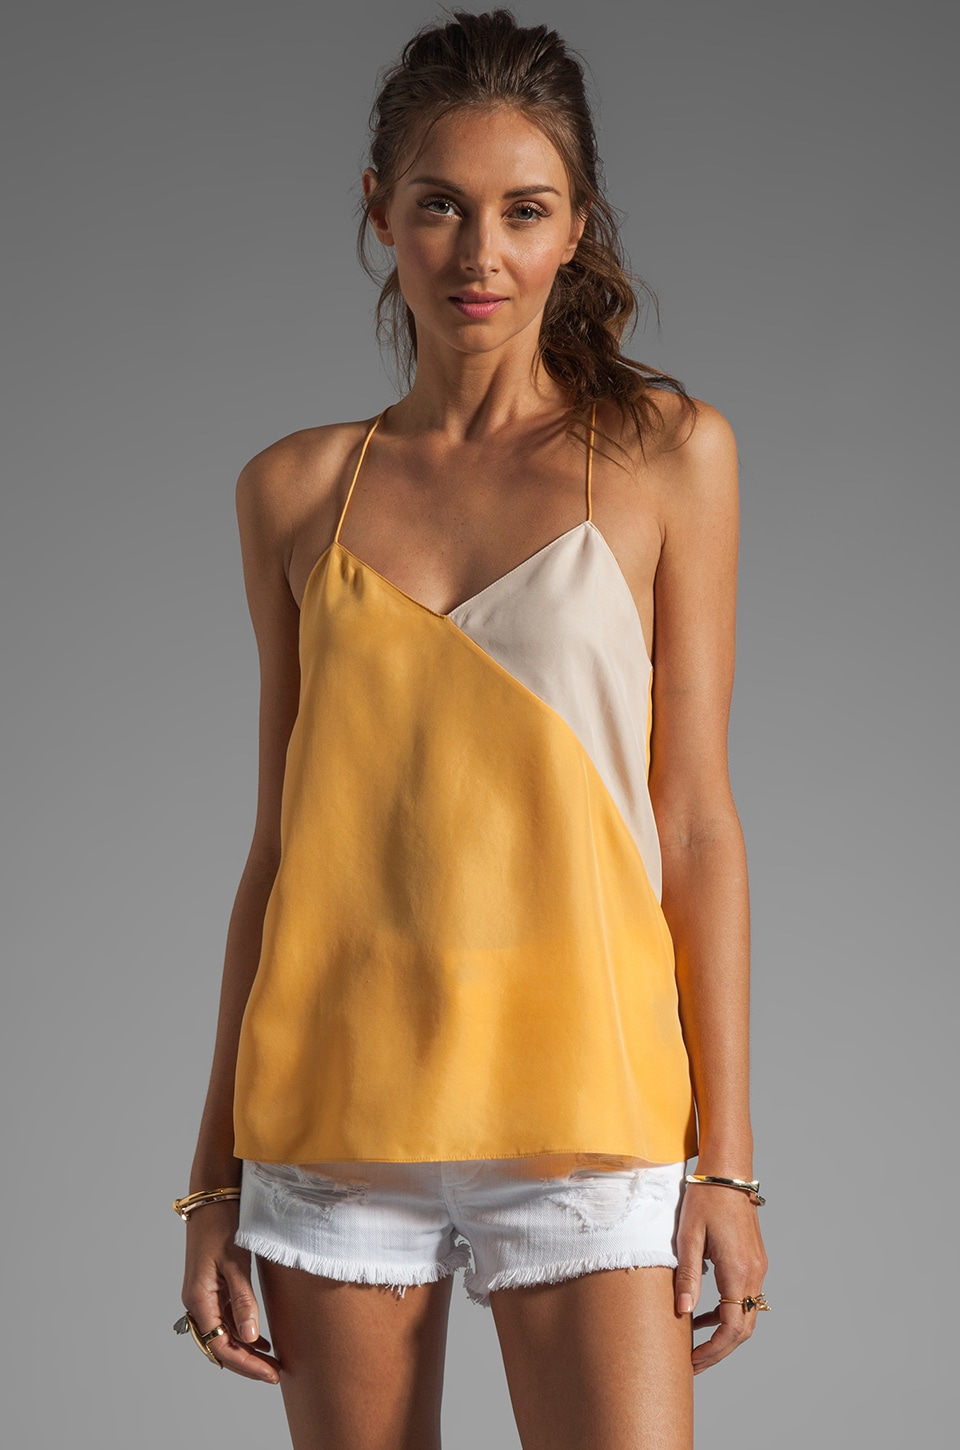 Tibi Colorblocked Silk Cami in Honey/Blush Multi